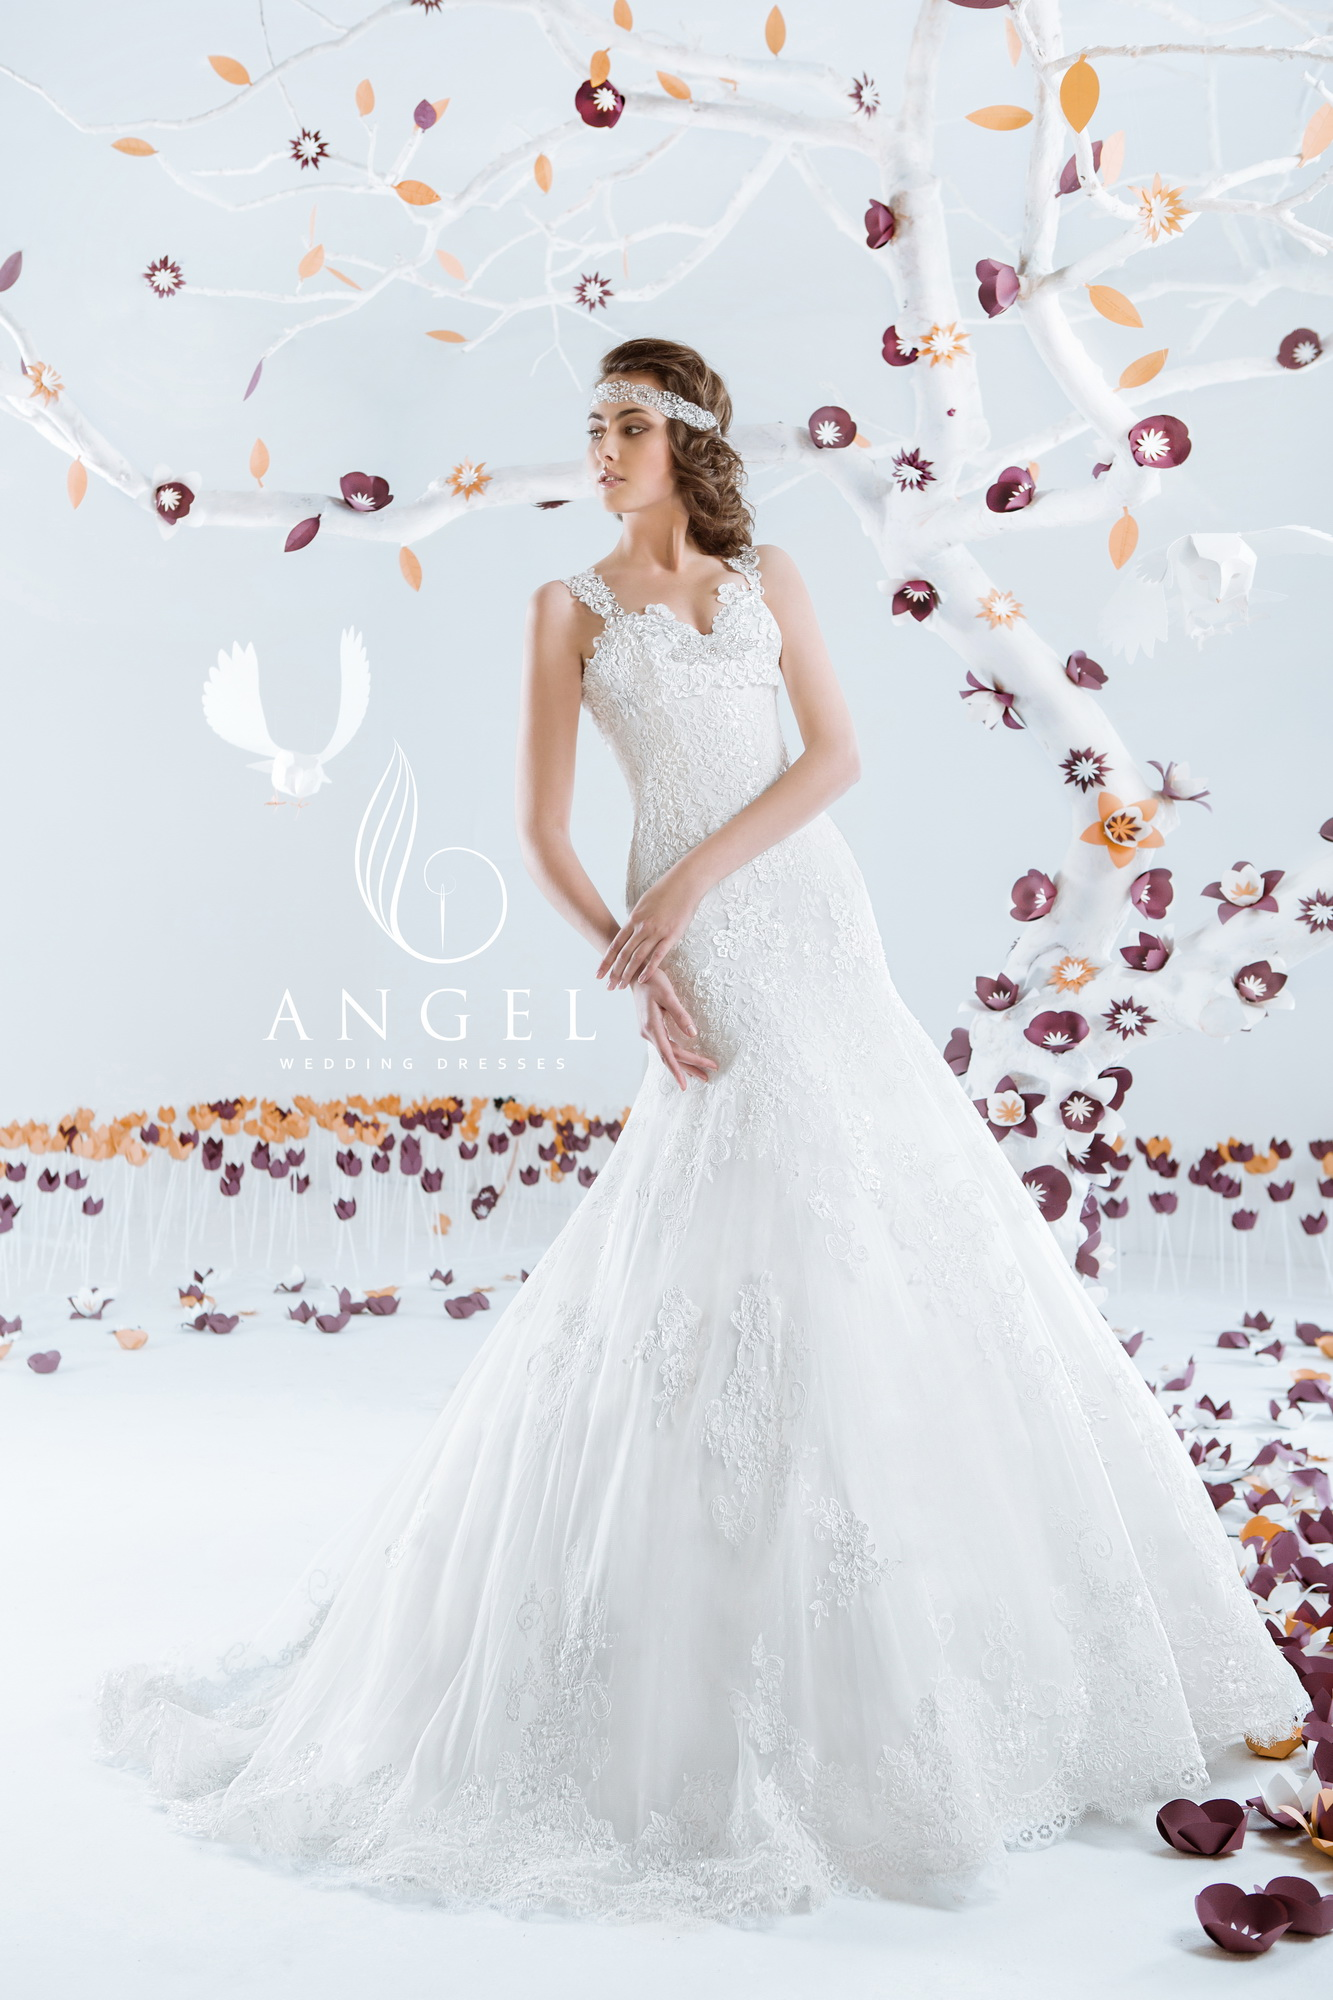 https://angel-novias.com/images/stories/virtuemart/product/Anca 280$.jpg